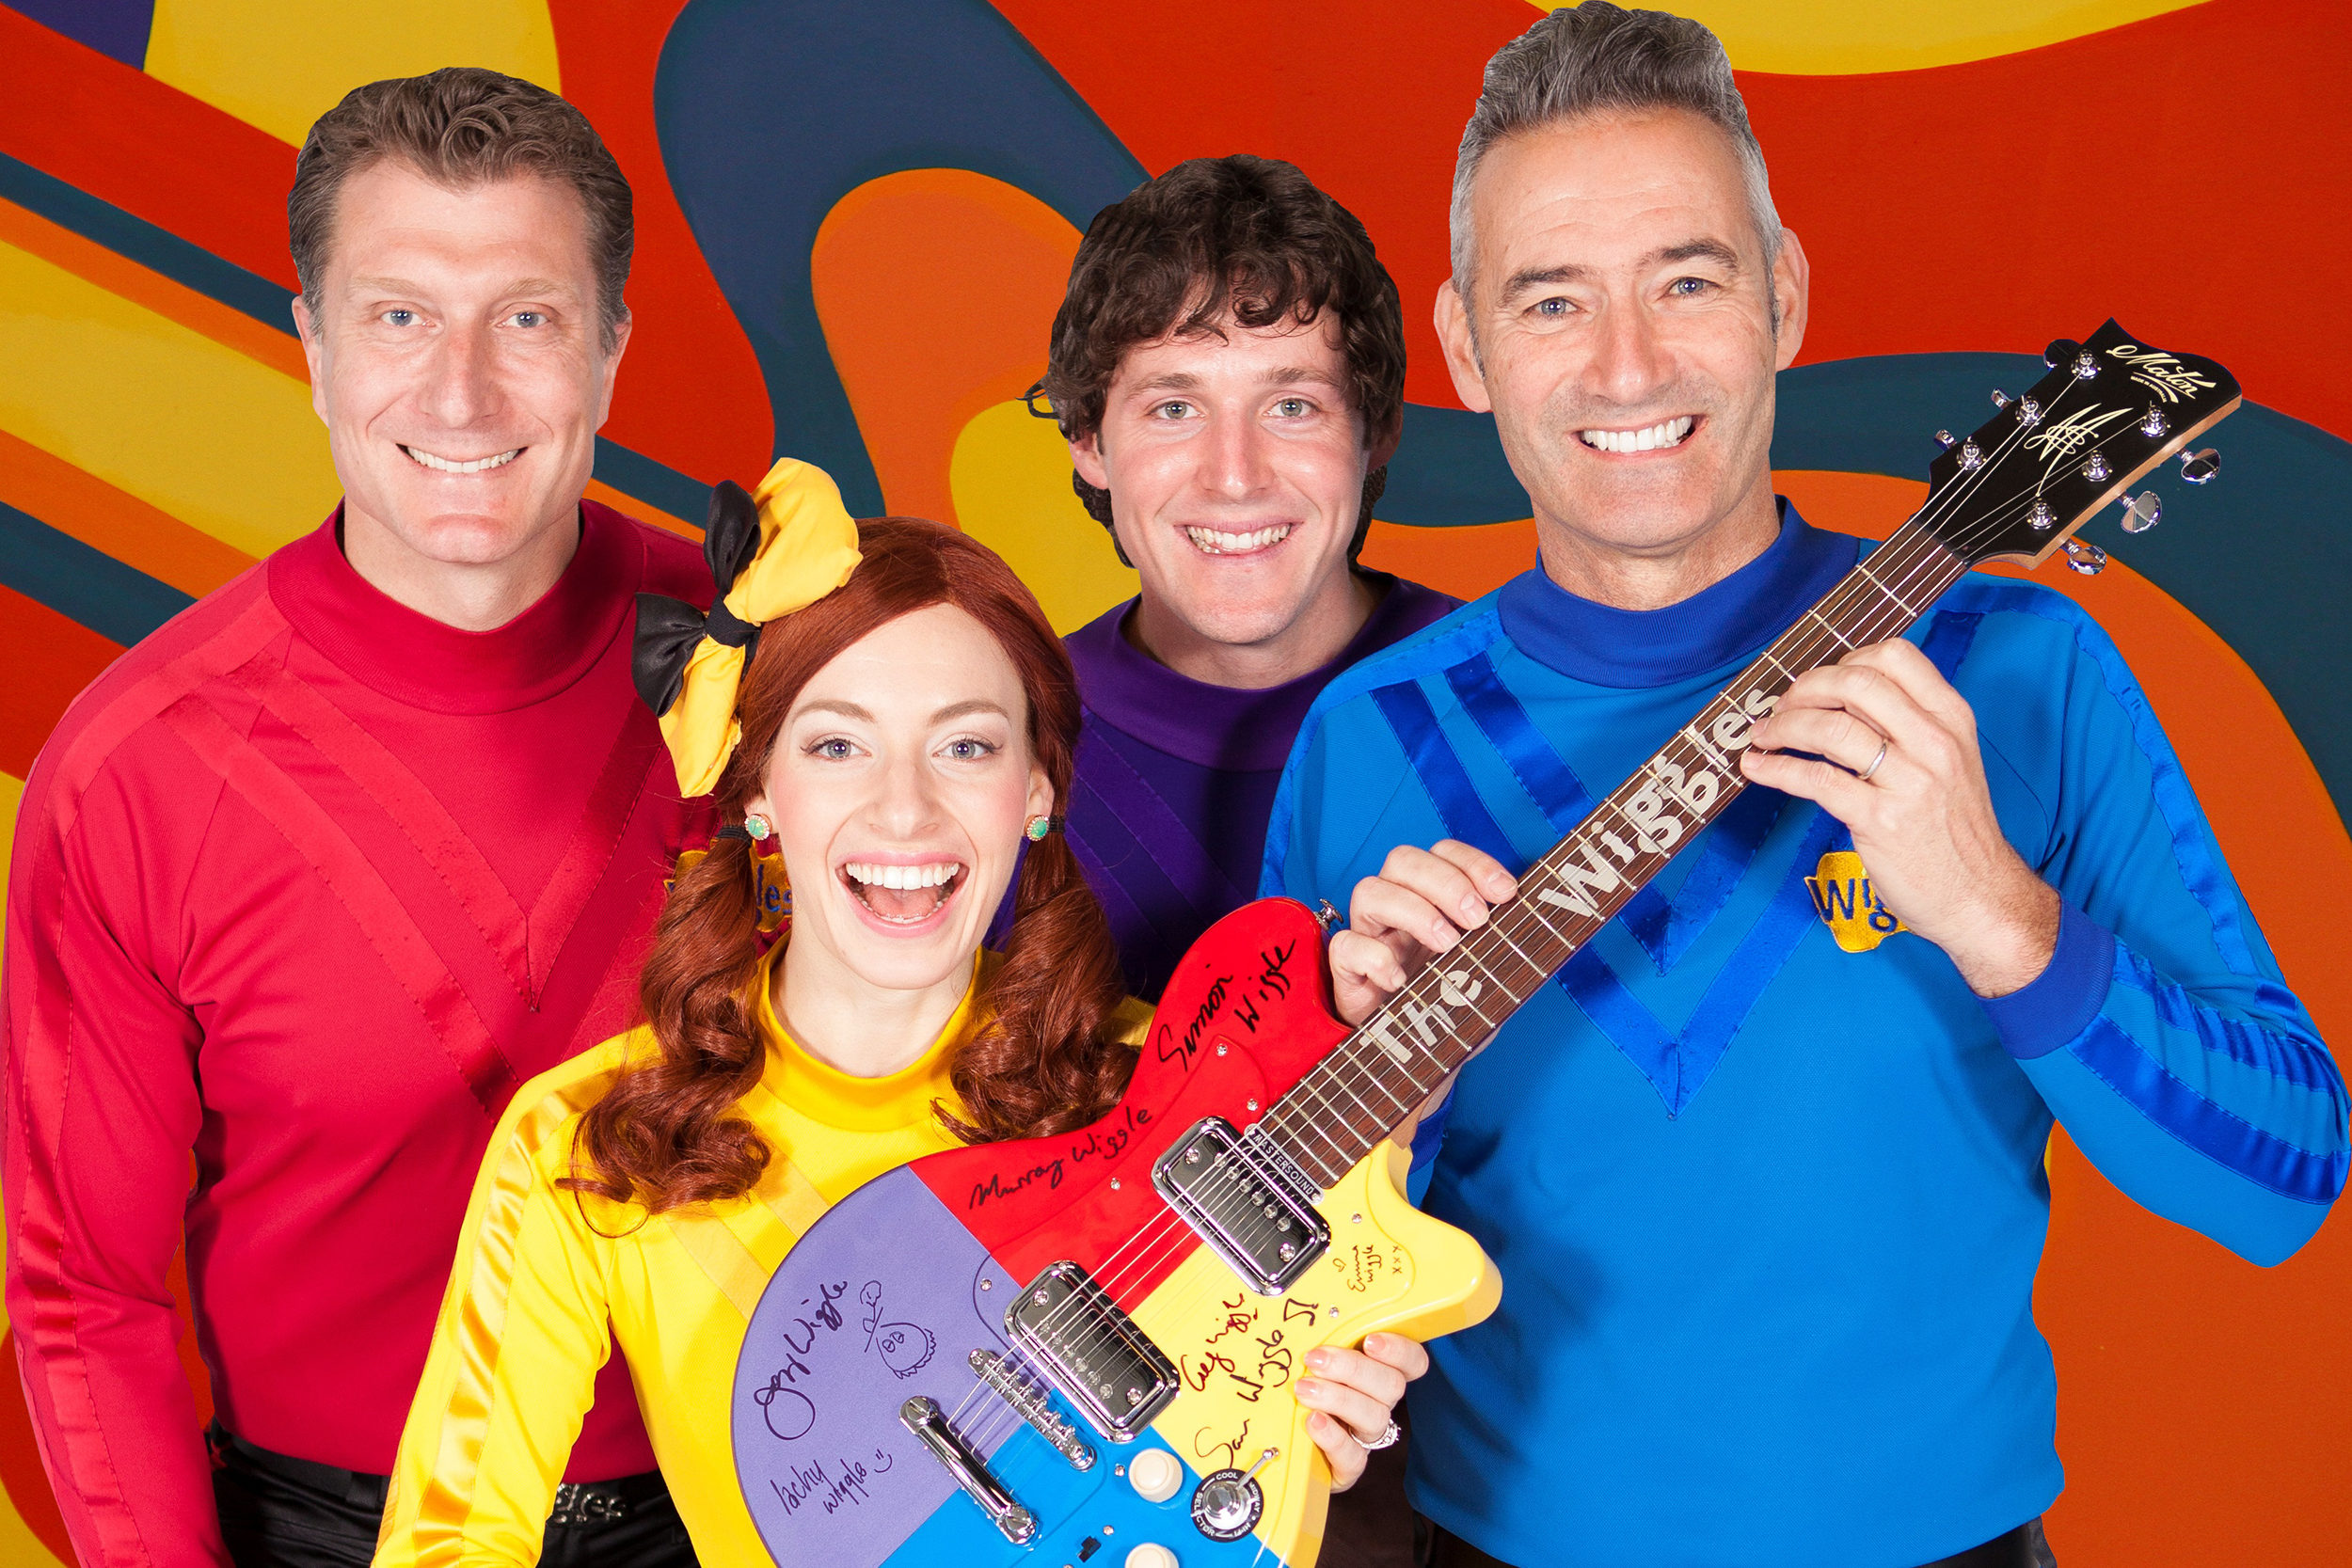 The Wiggles at The Powerhouse Museum